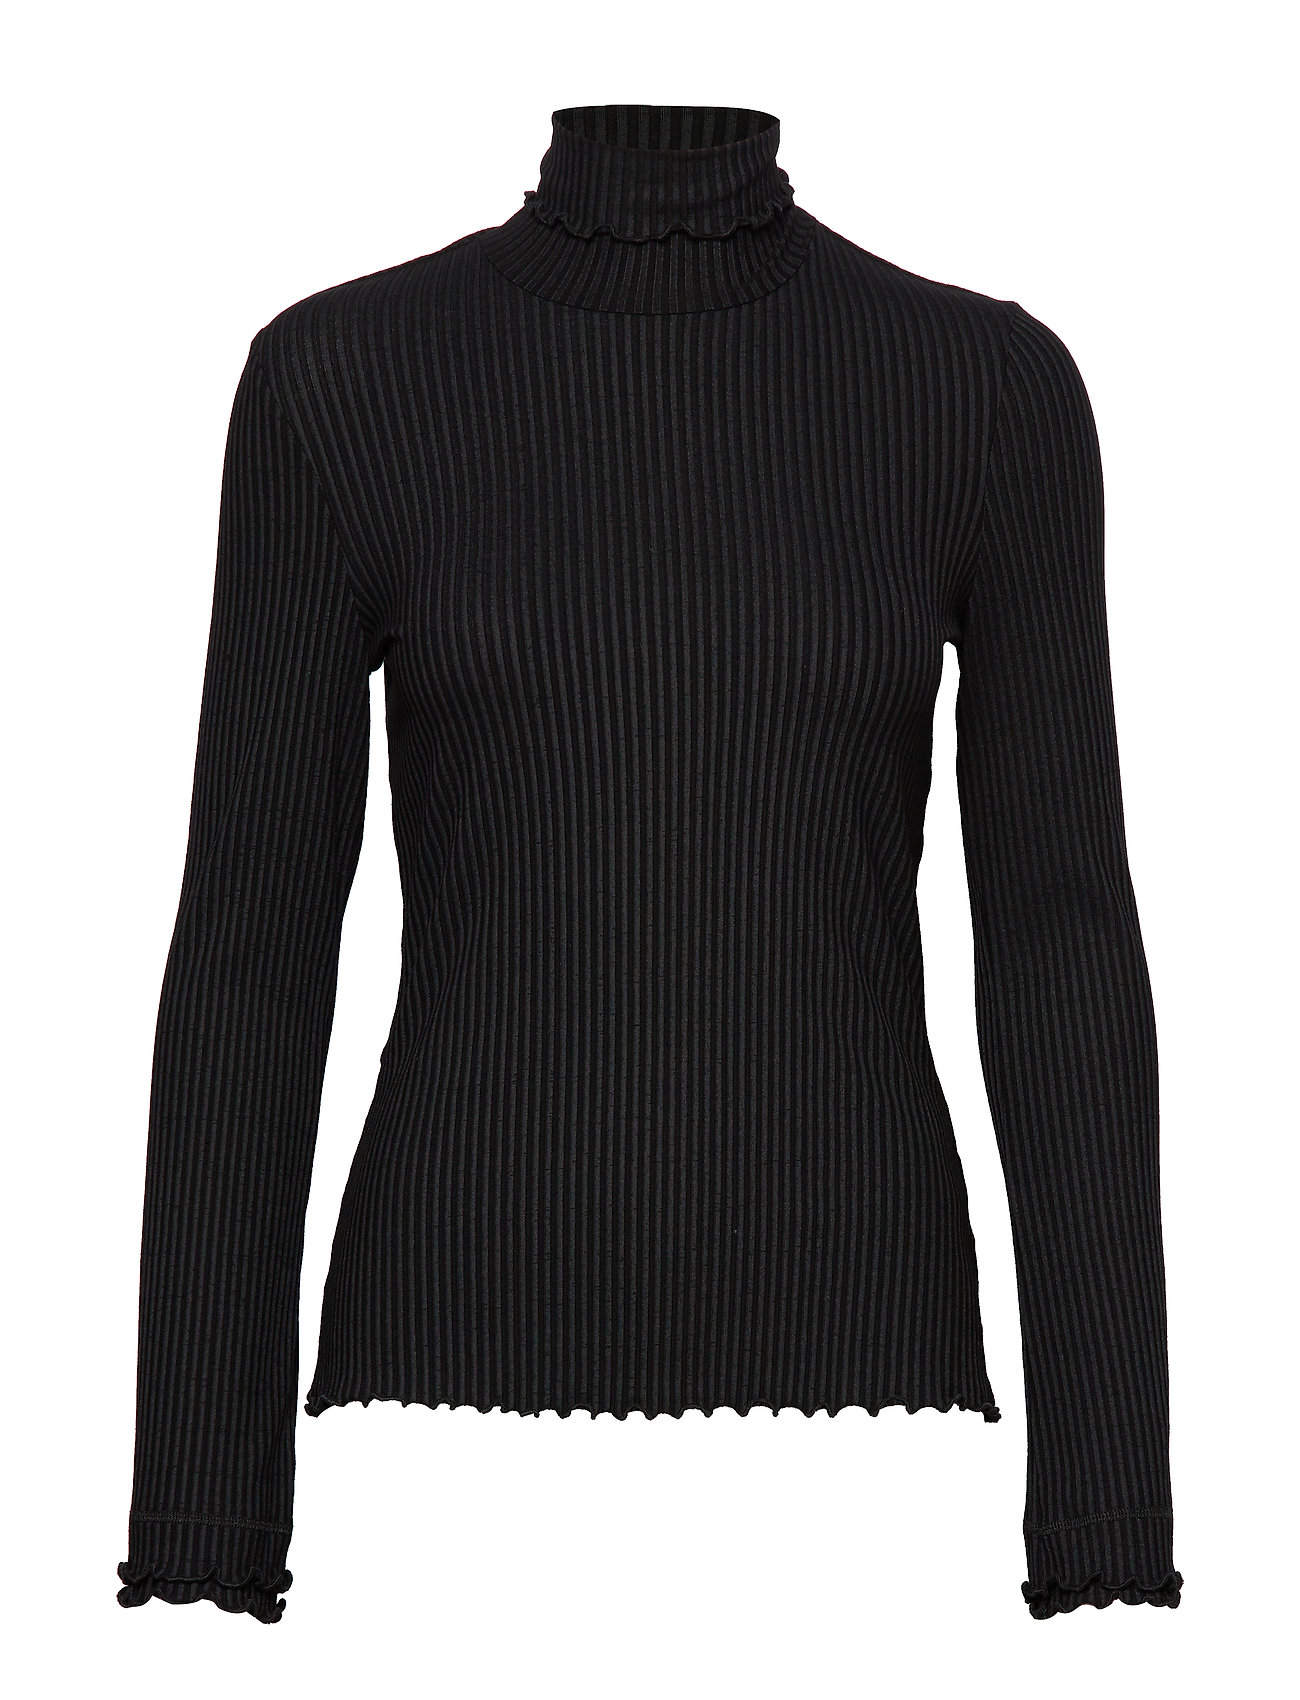 ODD MOLLY Decisionmaker L/S Top - ALMOST BLACK